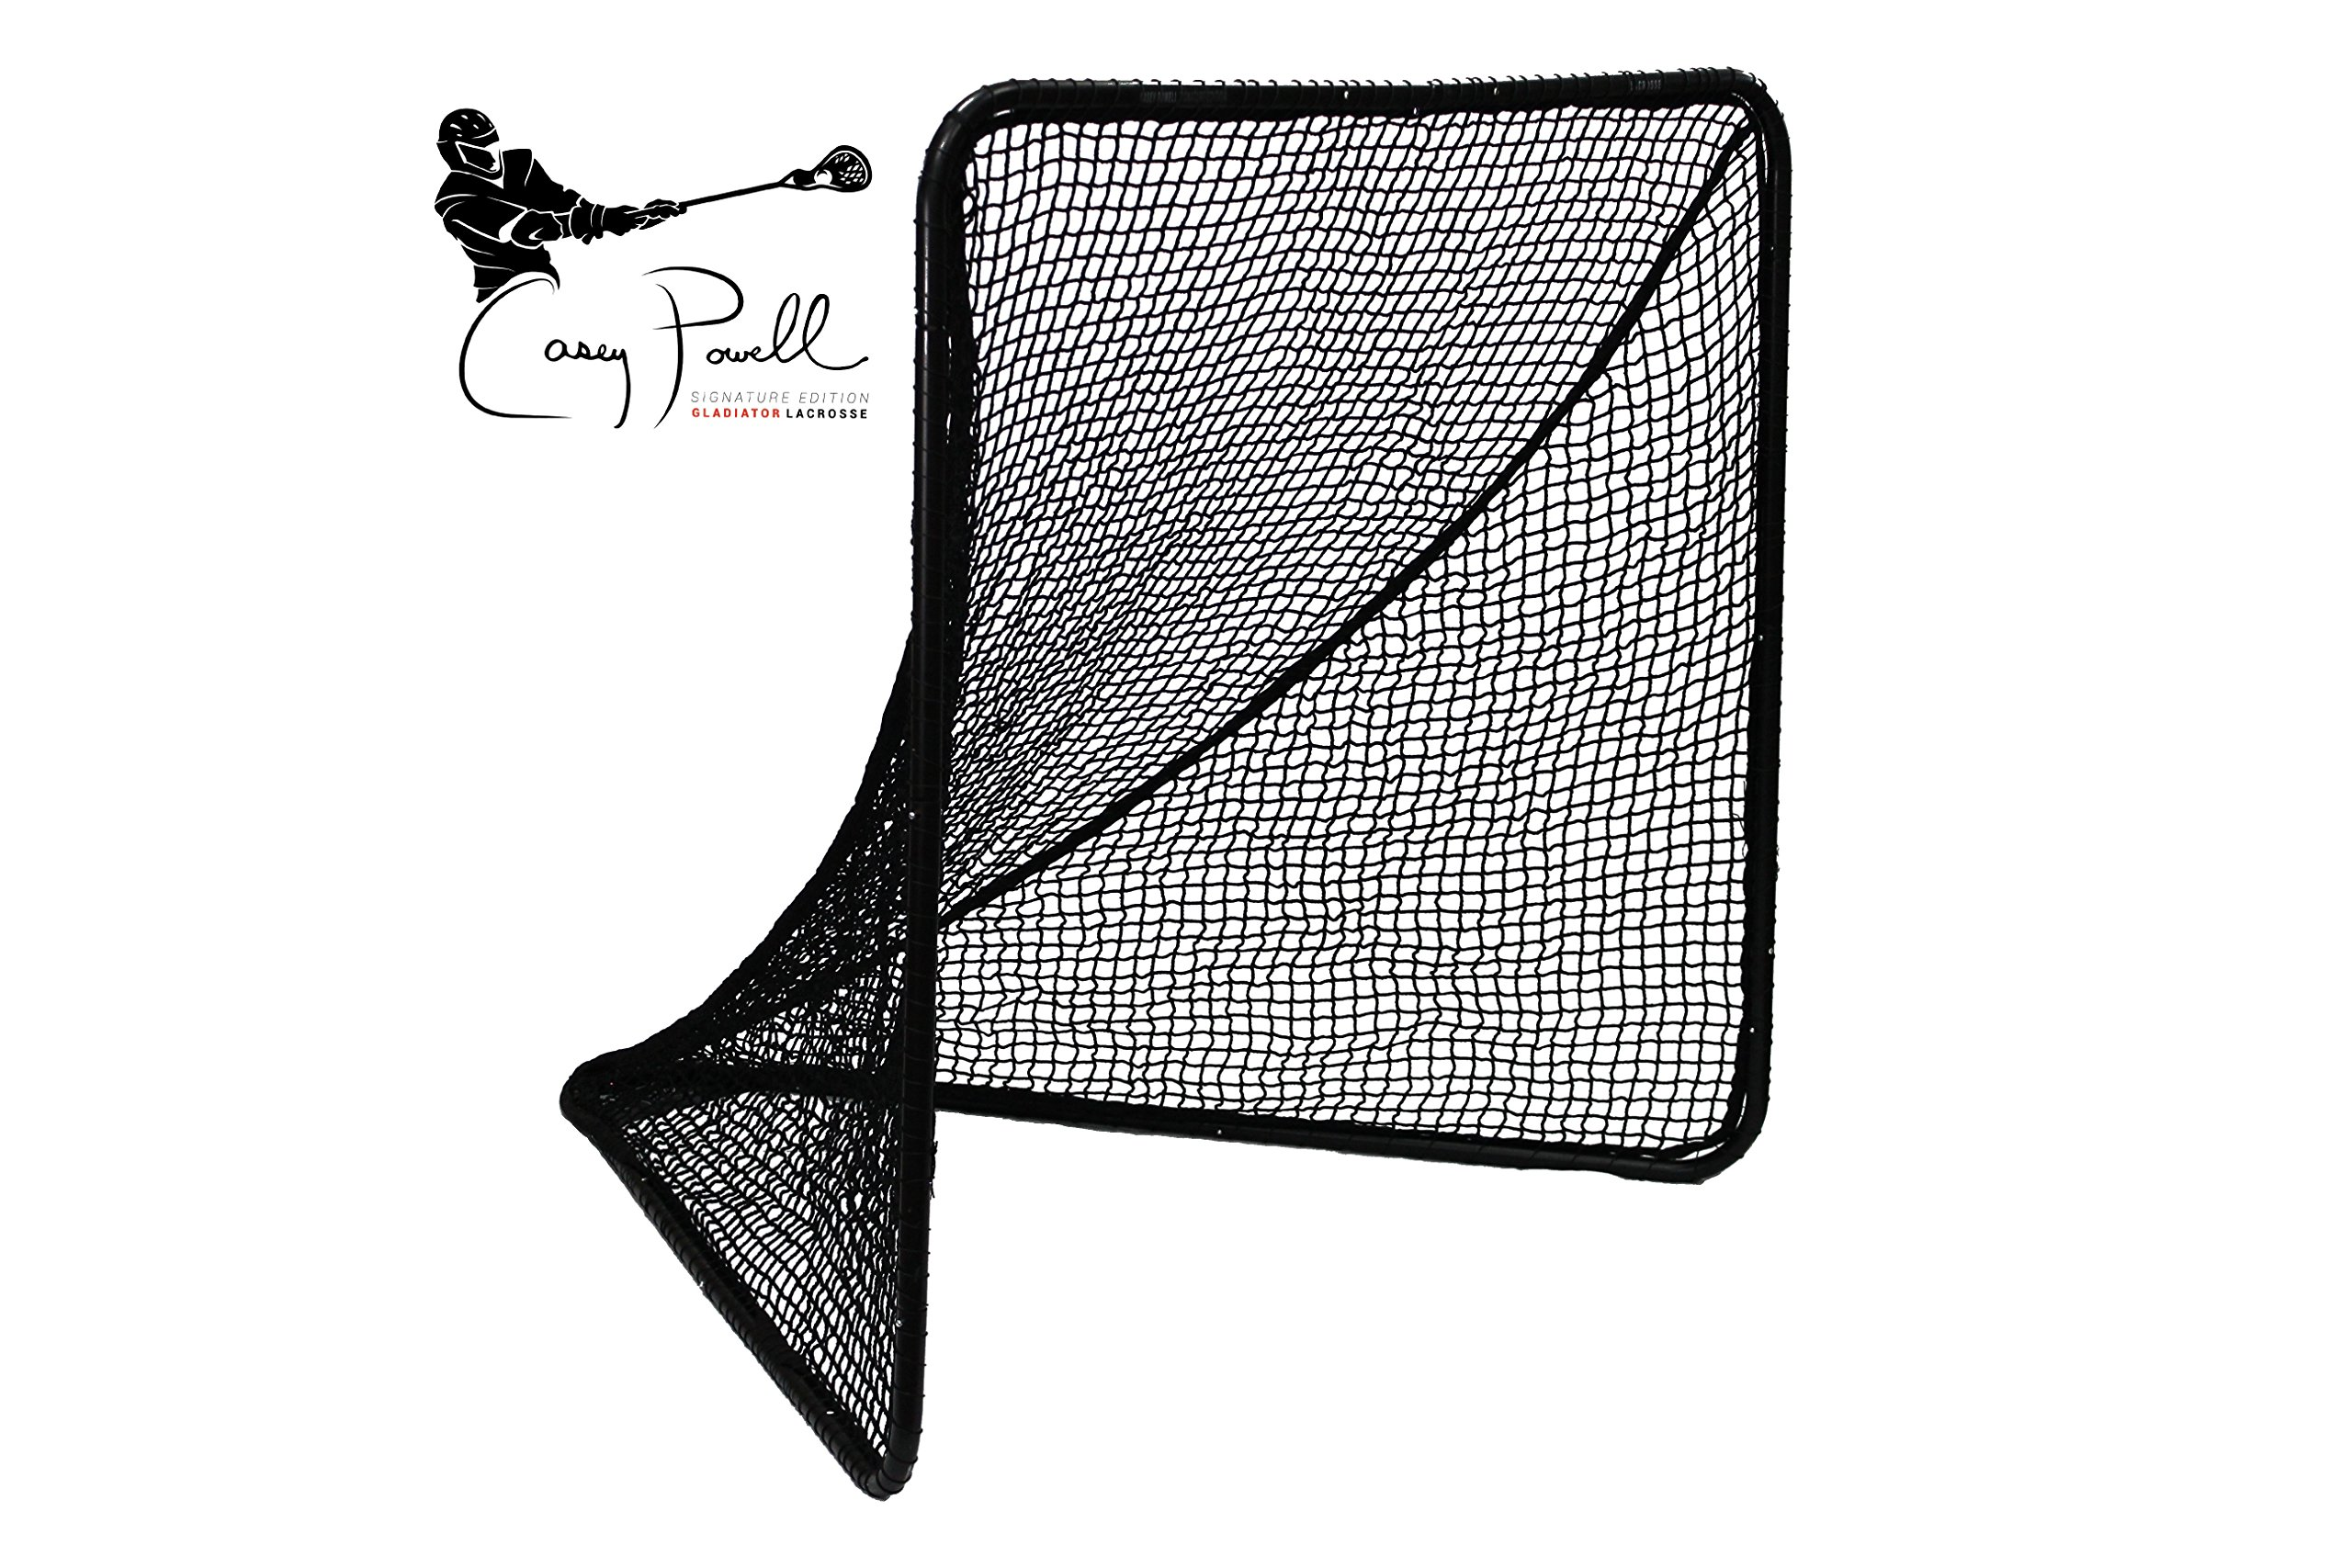 Gladiator Official Lacrosse Goal Net - Casey Powell Signature Edition by Gladiator Lacrosse by Casey Powell Signature Edition